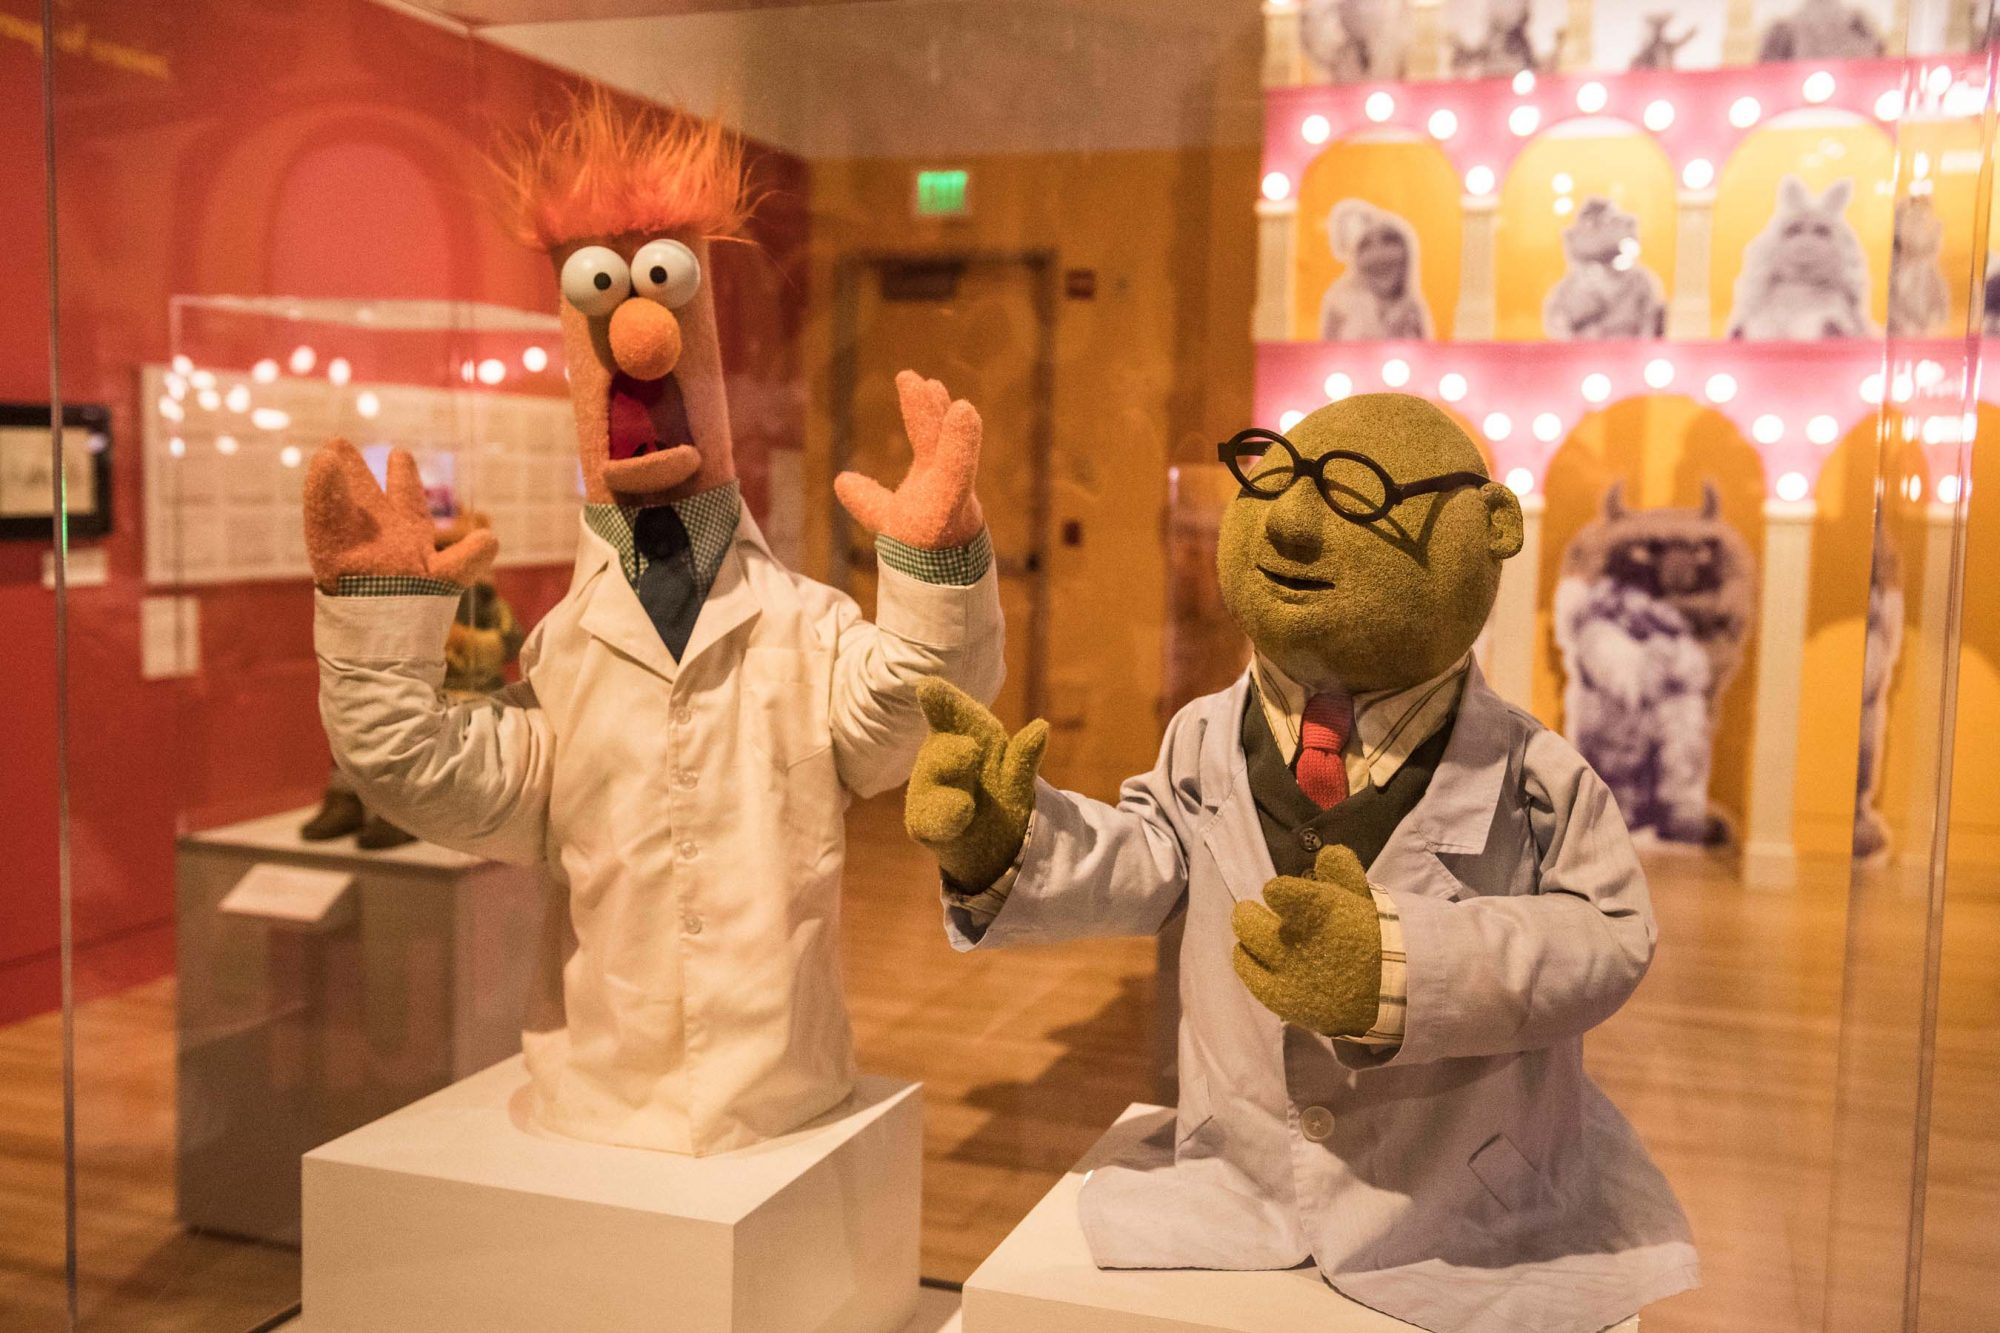 Skirball Cultural Center - The Jim Henson Exhibition - May 30, 2